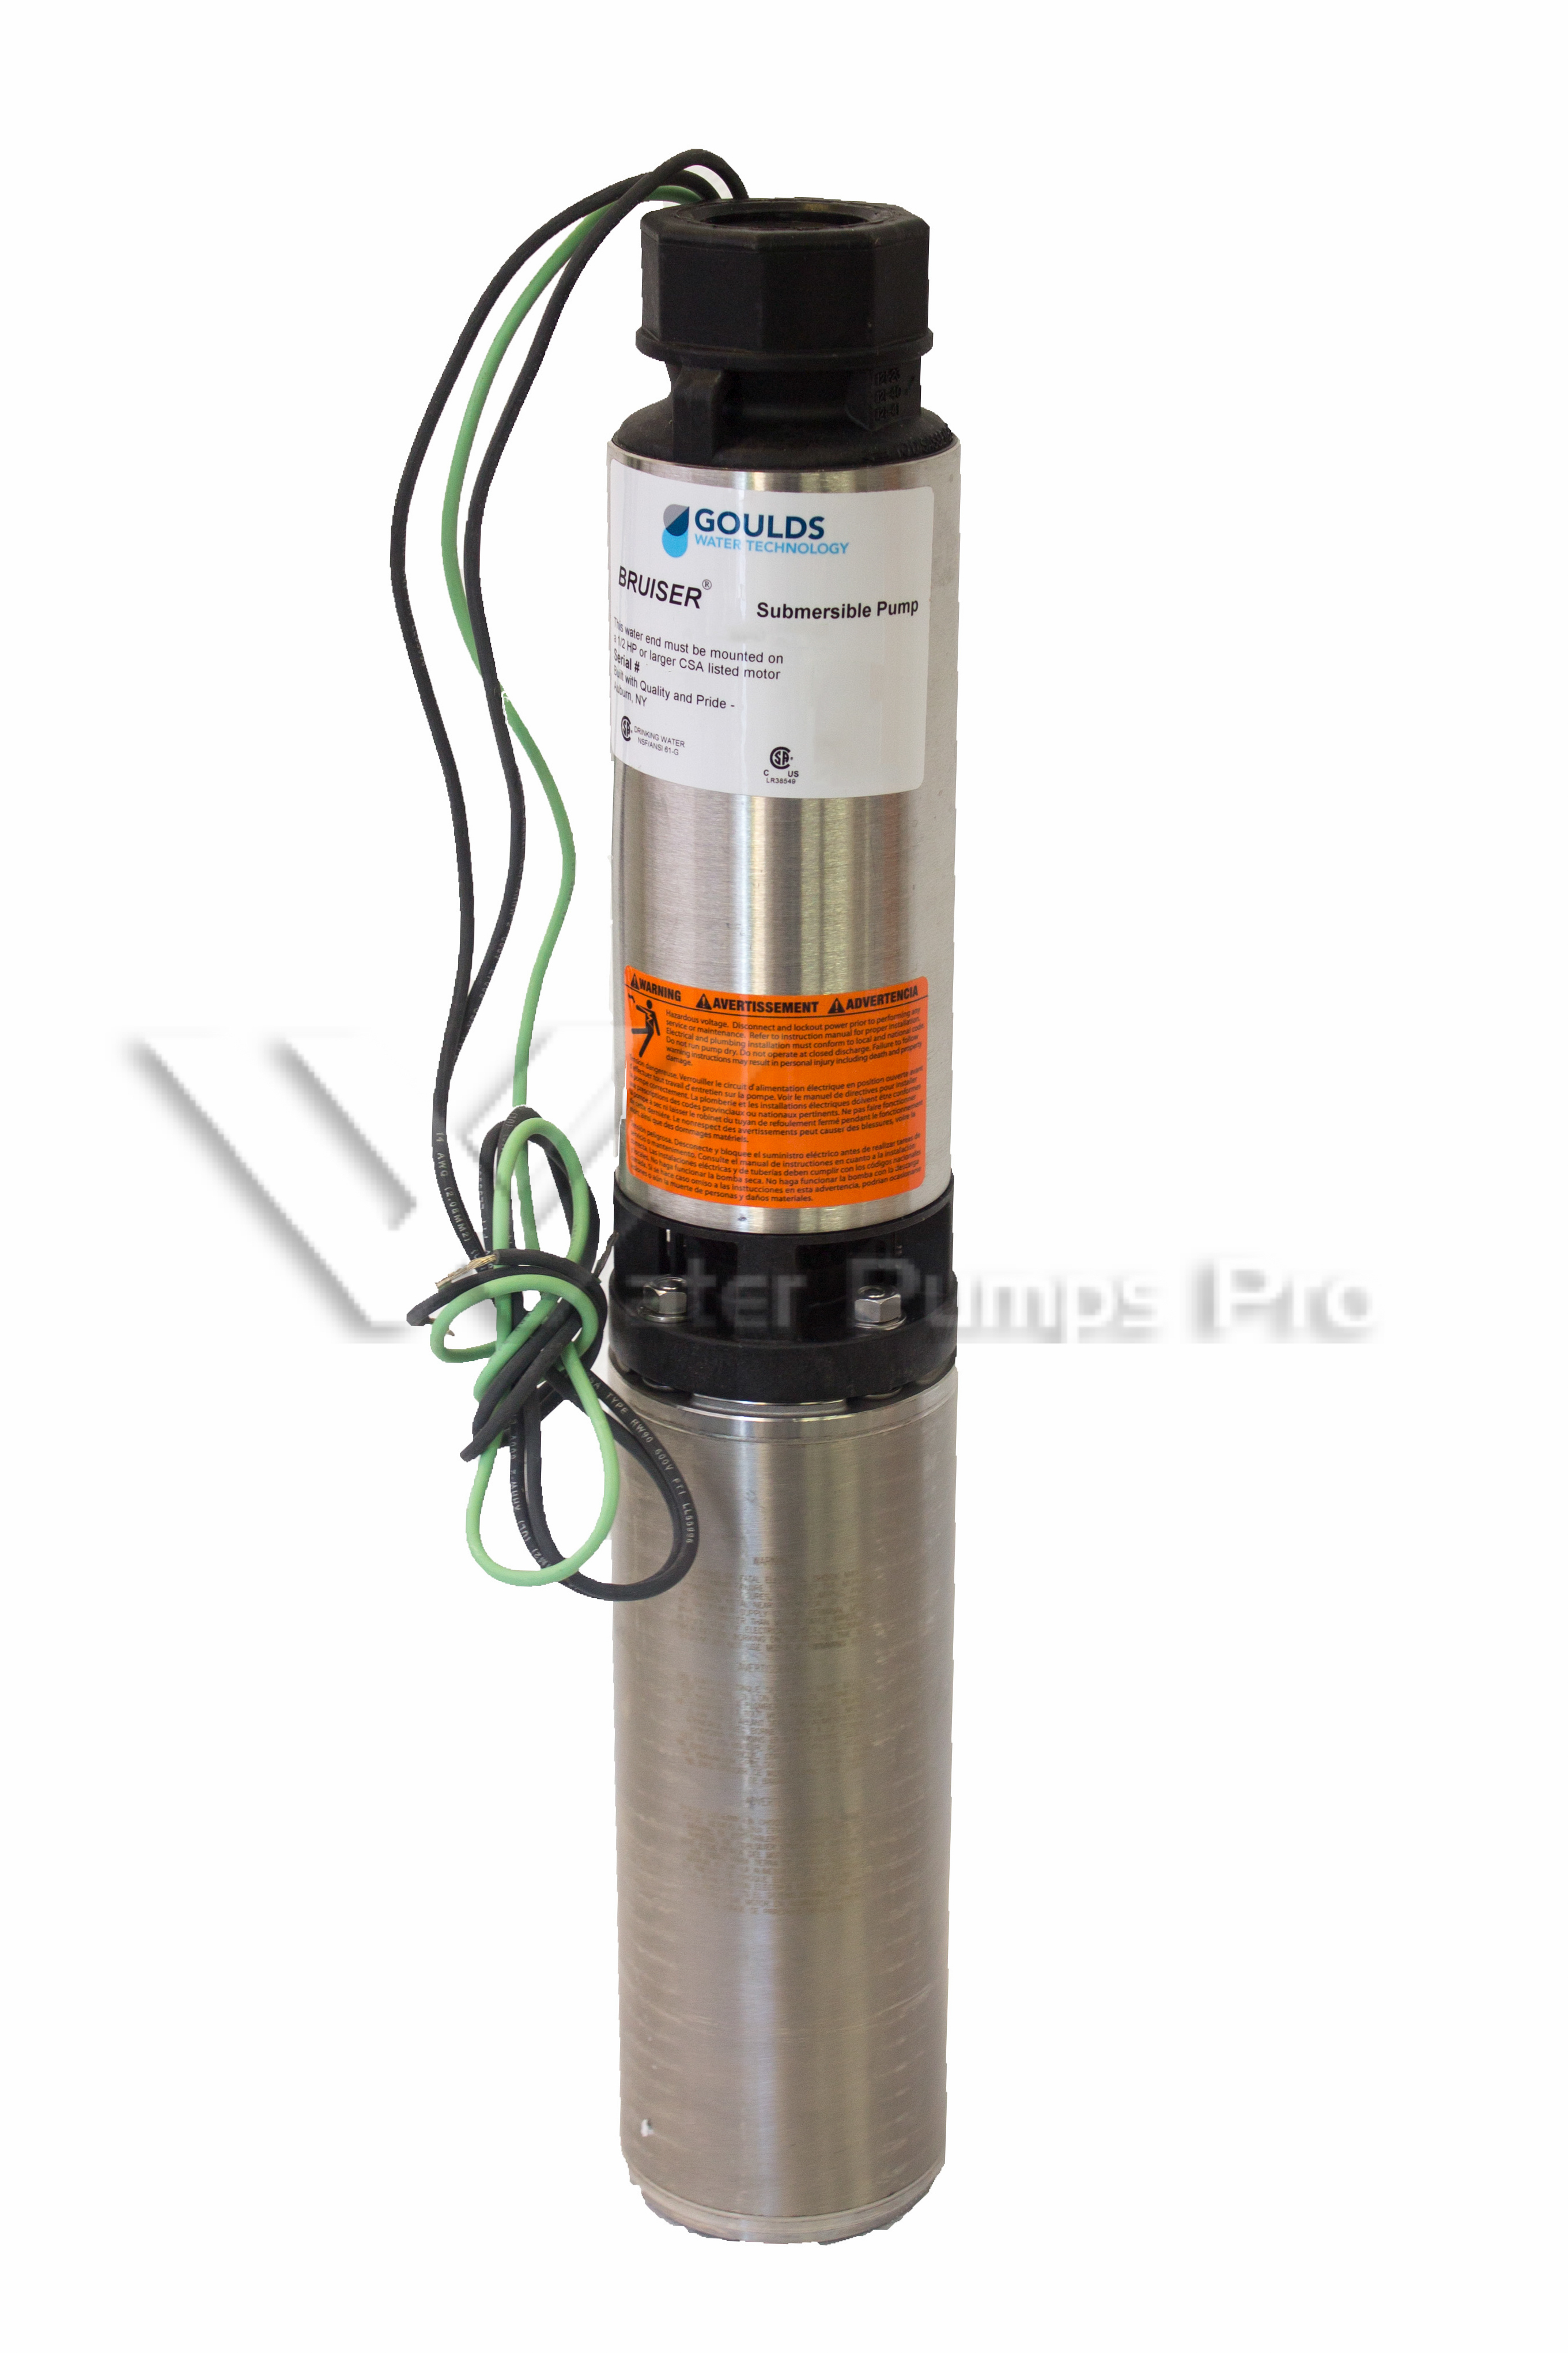 Submersible Pumps: Submersible Pumps Wiring Diagram - Submersible Well Pump Wiring Diagram